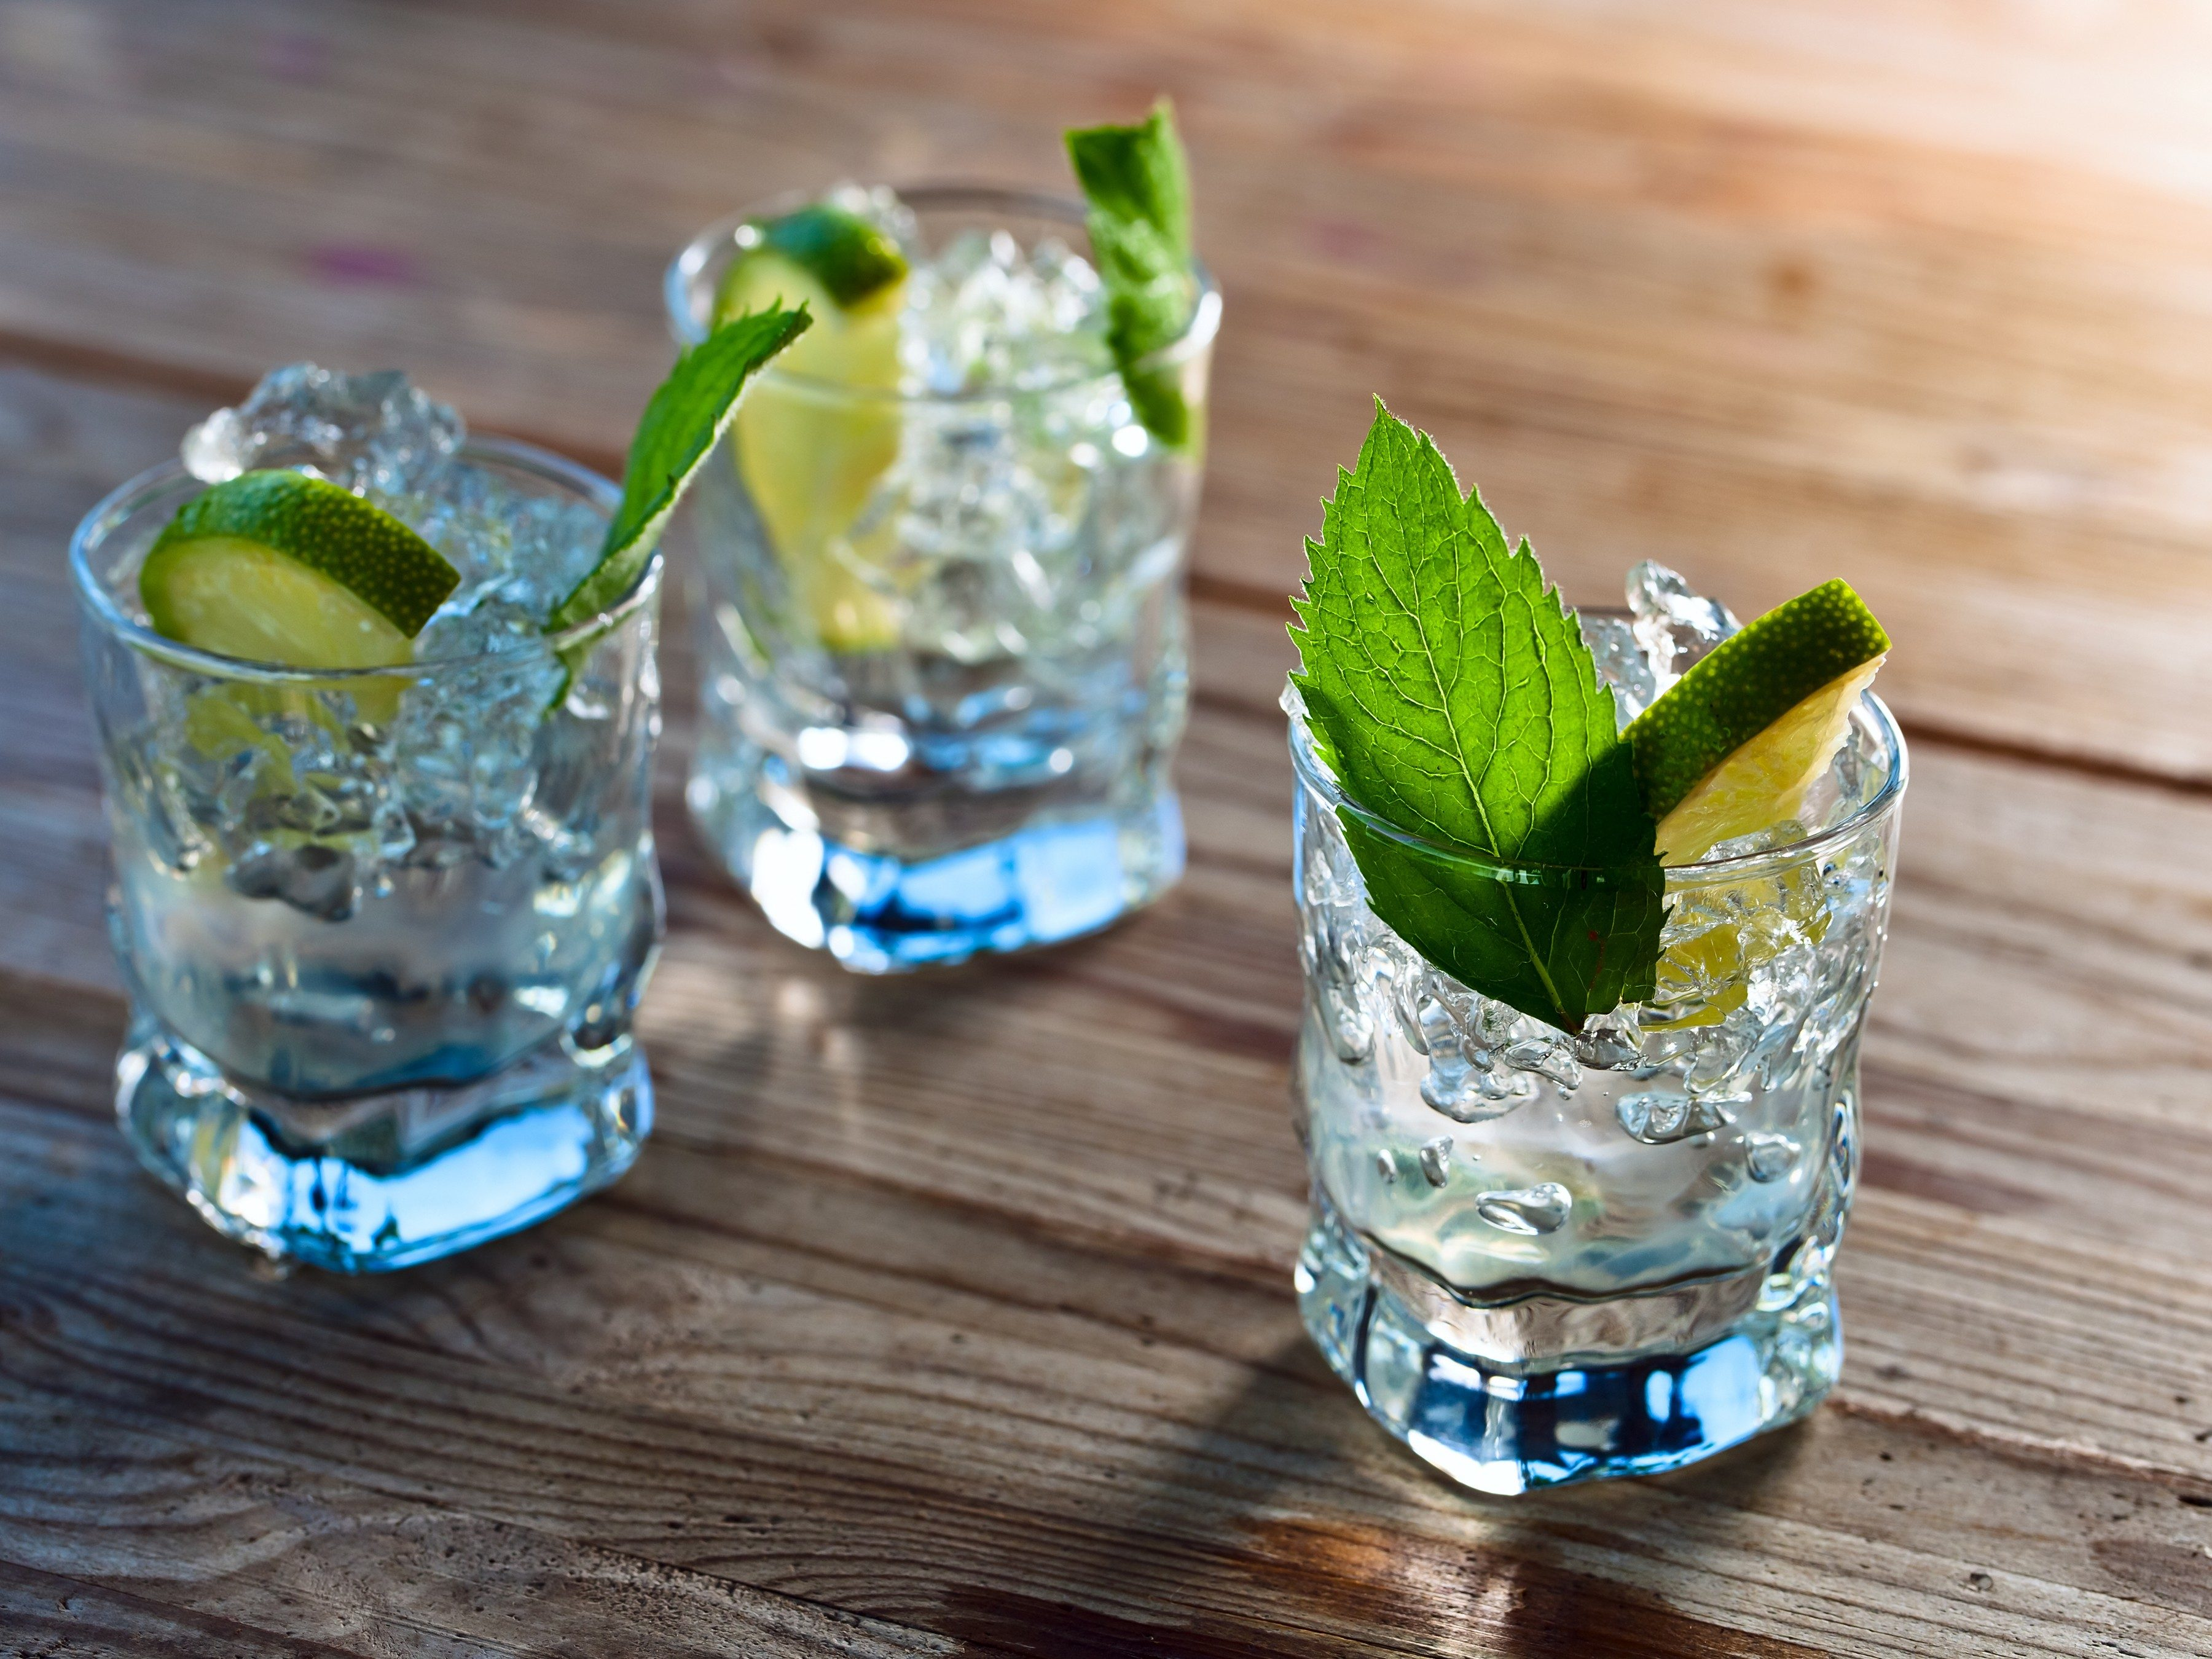 5. Drink purer forms of alcohol